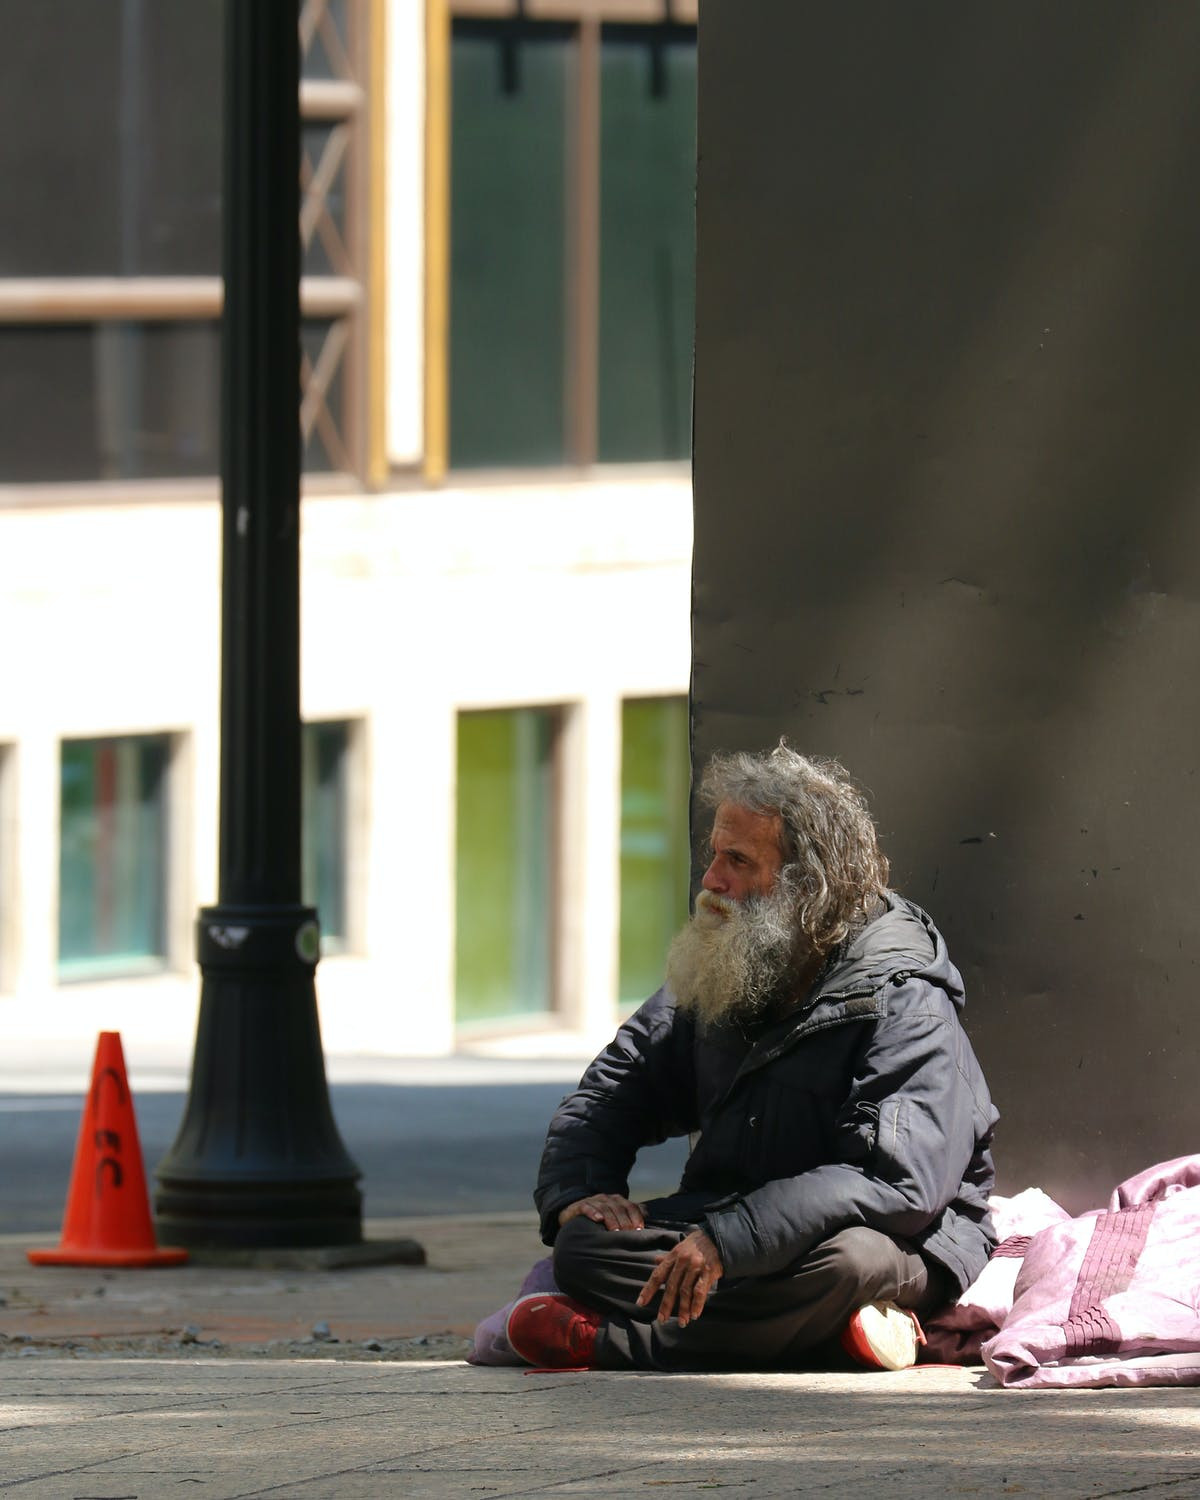 A homeless man had taken up residence by the side of the main door   Source: Pexels